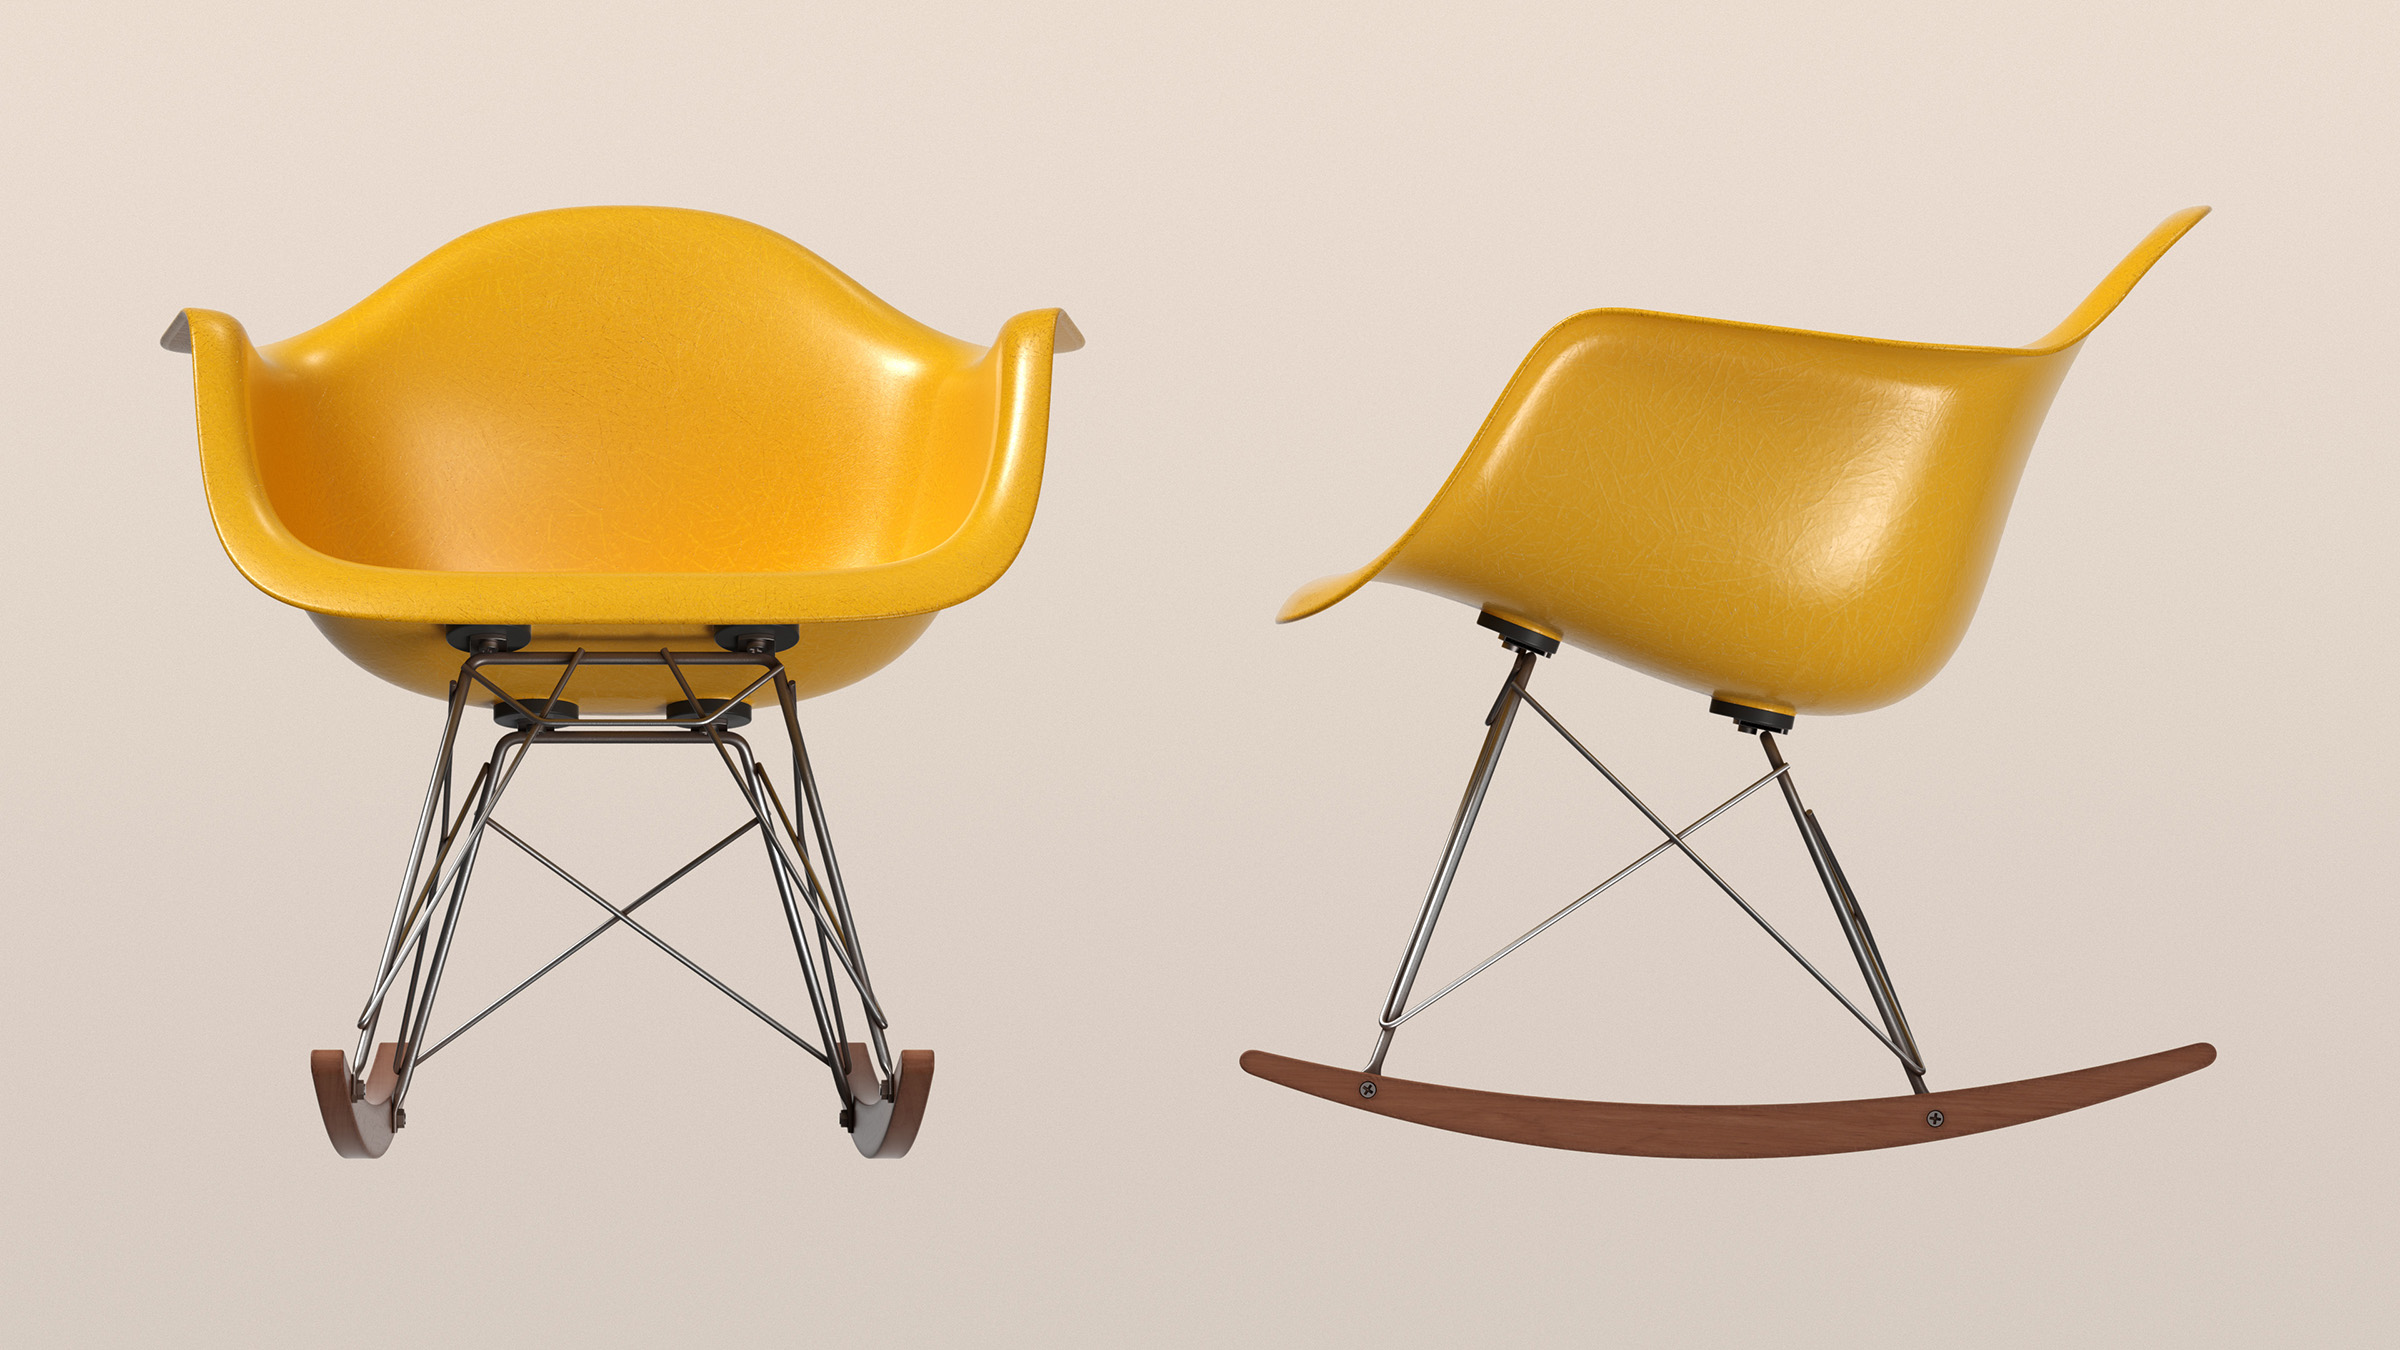 Eames Fibreglass Rocking Armchair CAD sculpting exercise